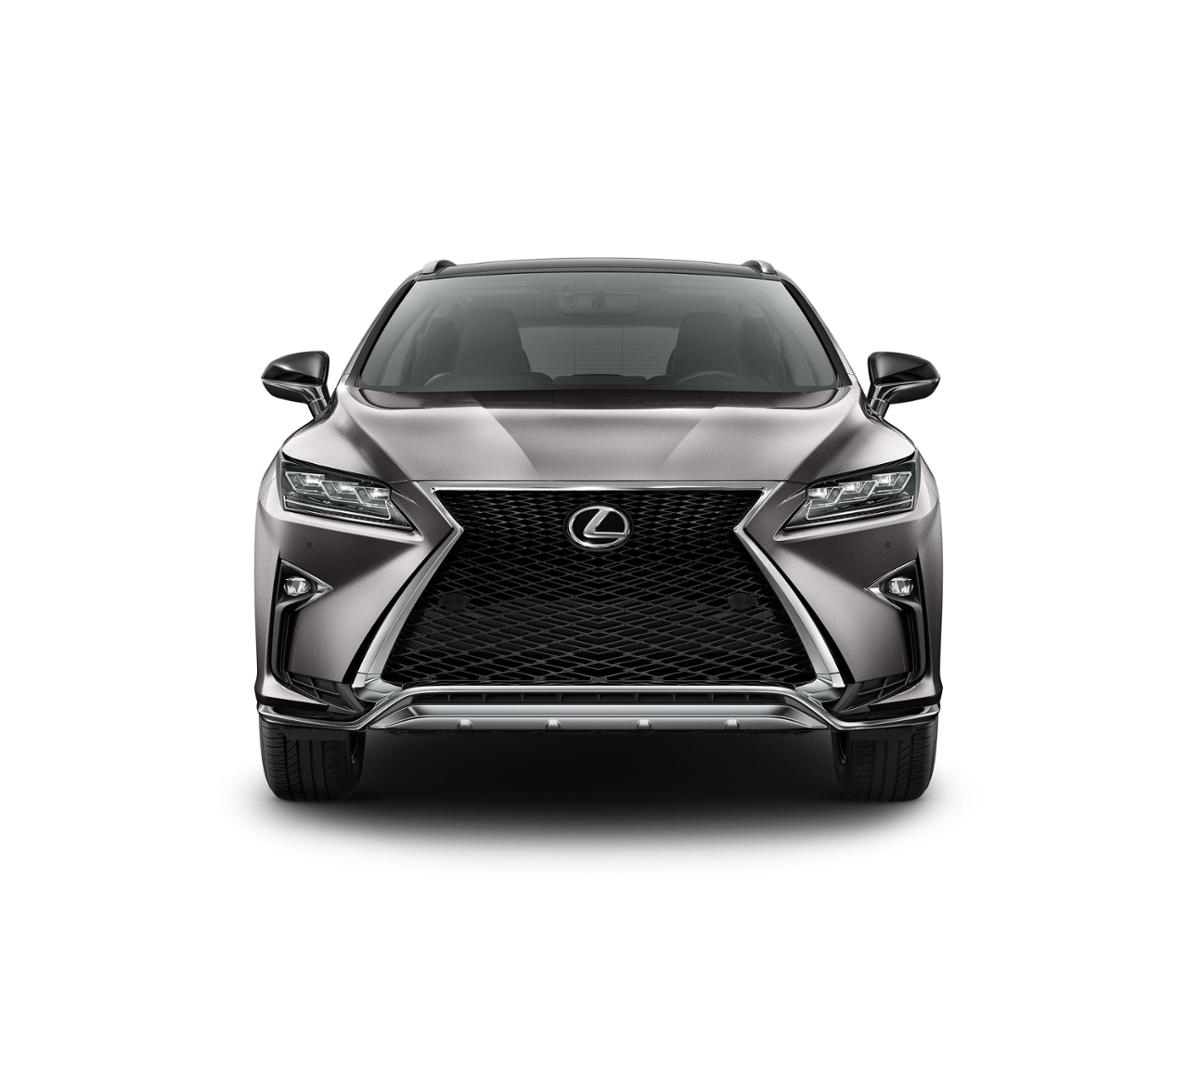 Lexus Rx 350 Lease: New 2019 Lexus RX 350 For Sale In Escondido, CA